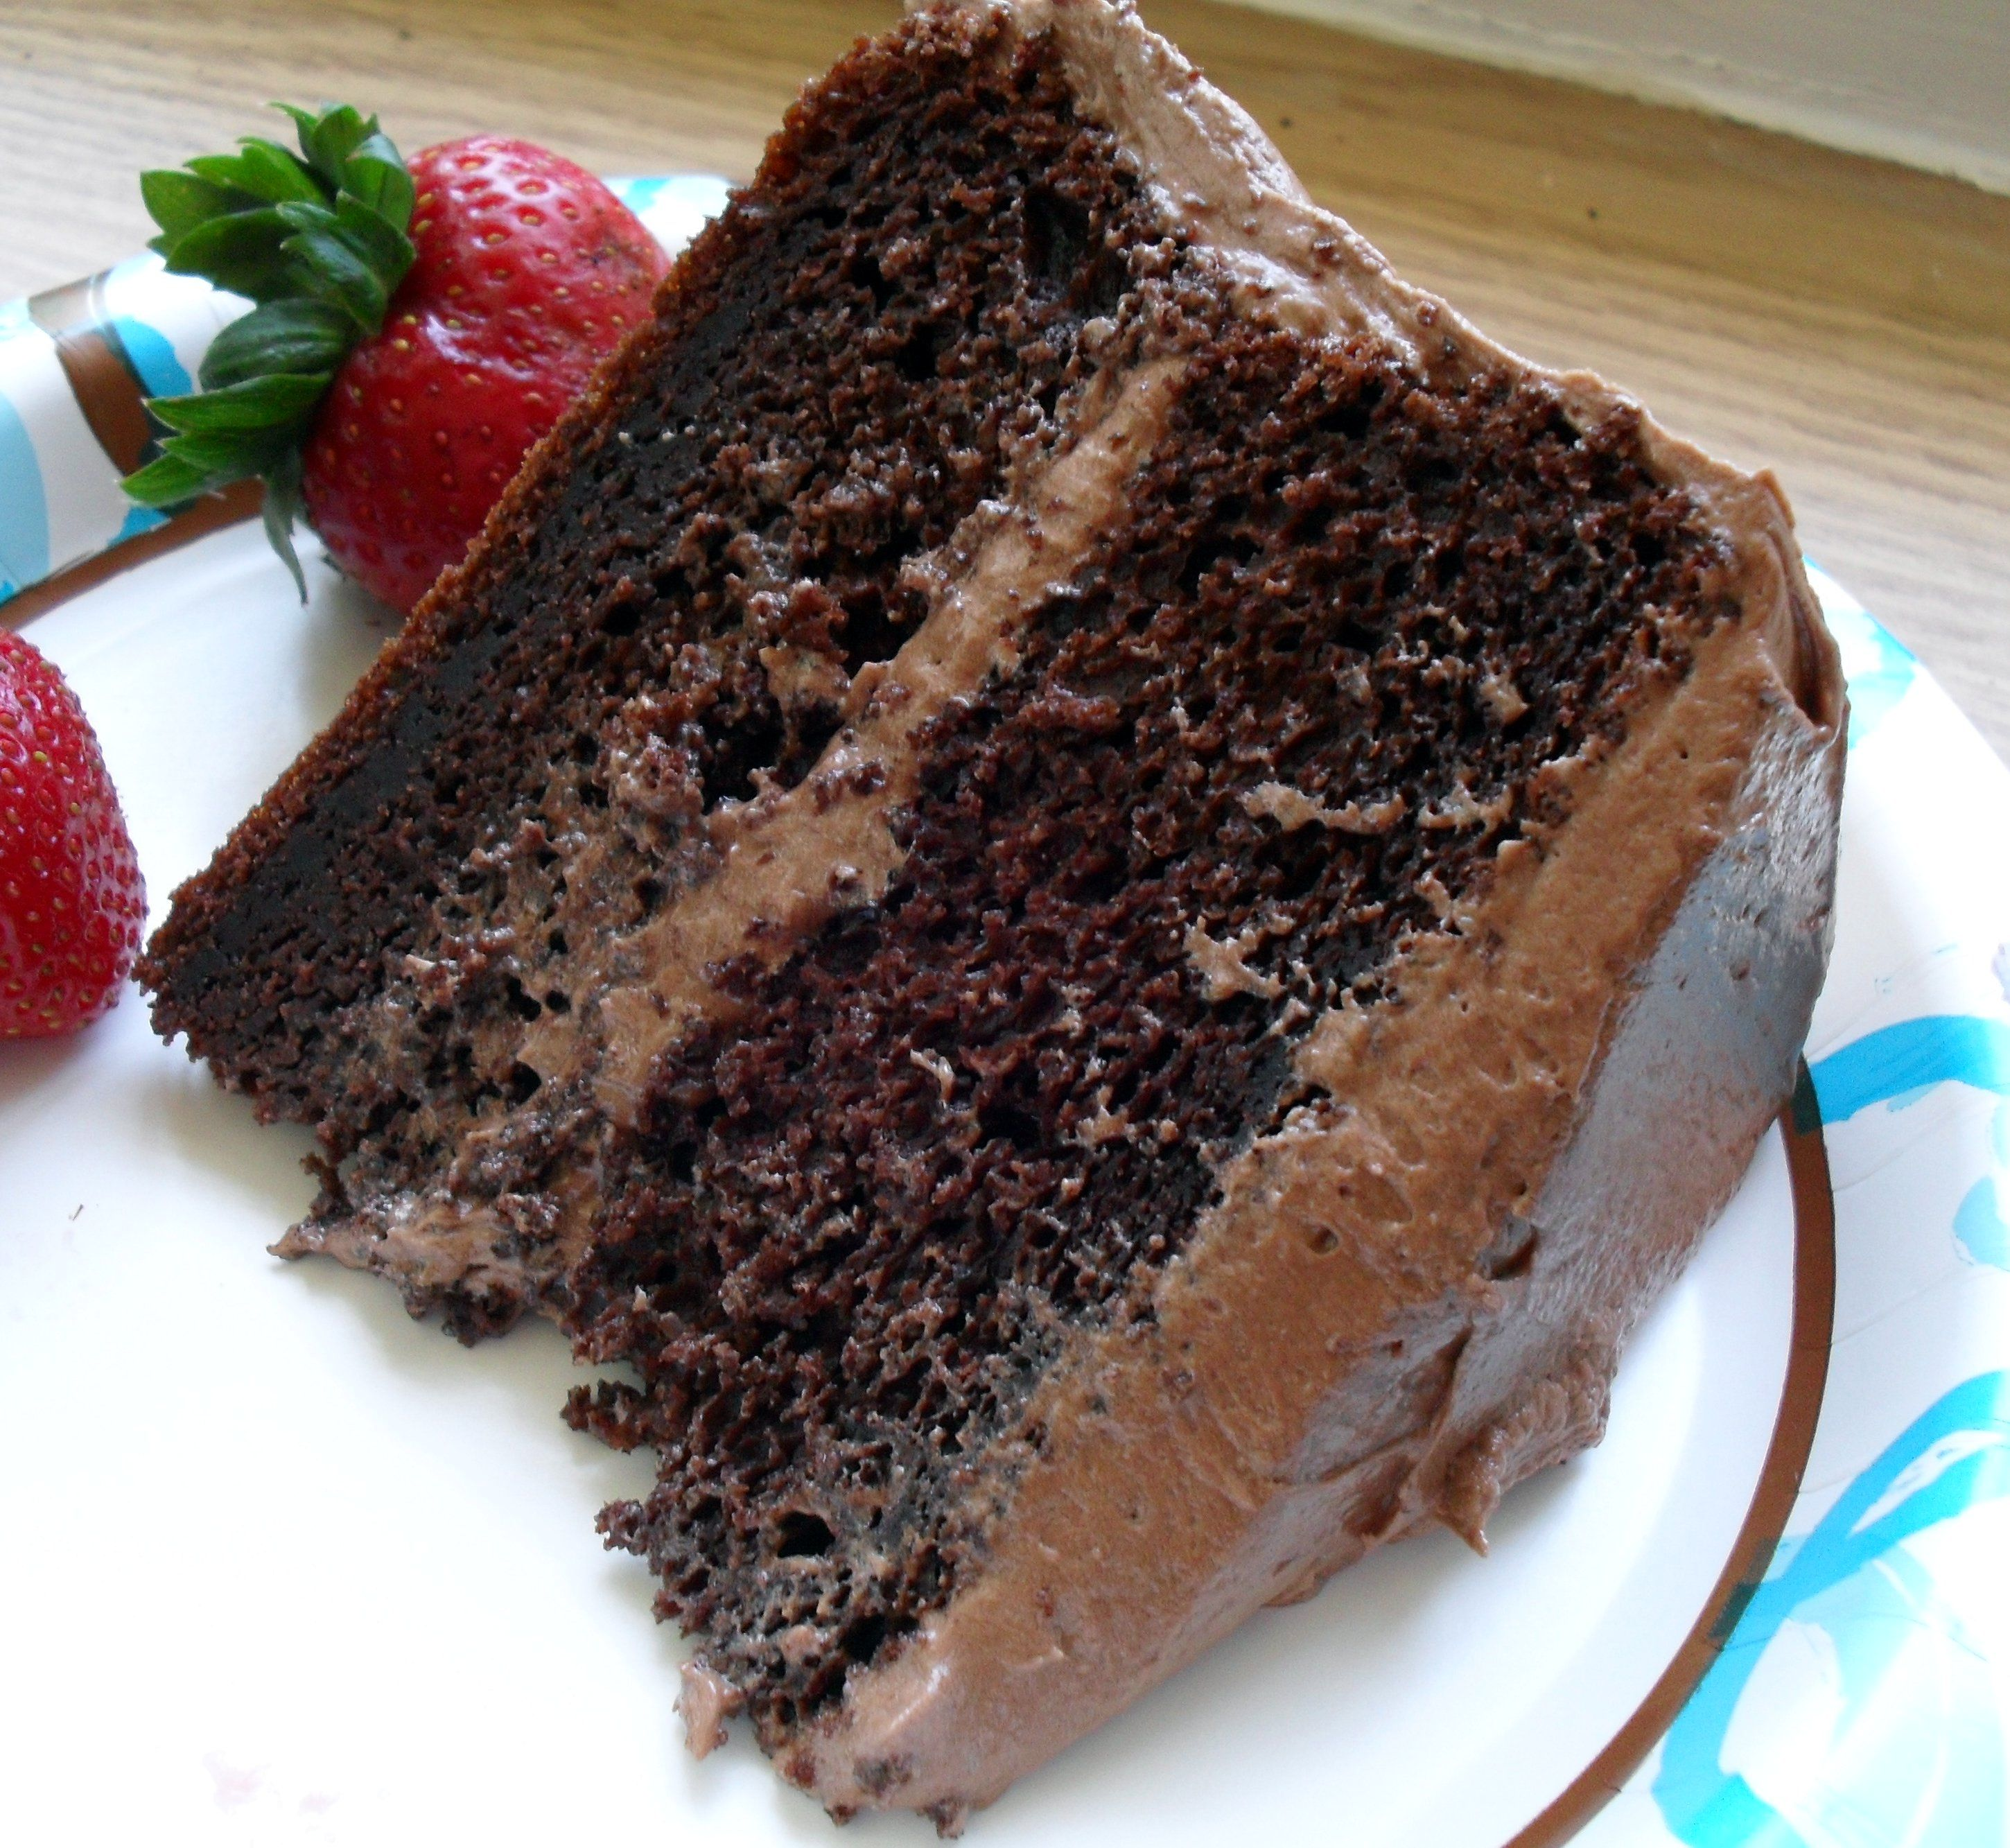 Easy Sour Cream Chocolate Layer Cake With To Die For Chocolate Frosting Chocolate Cake Mix Recipes Sour Cream Chocolate Cake Cake Recipe With Sour Cream